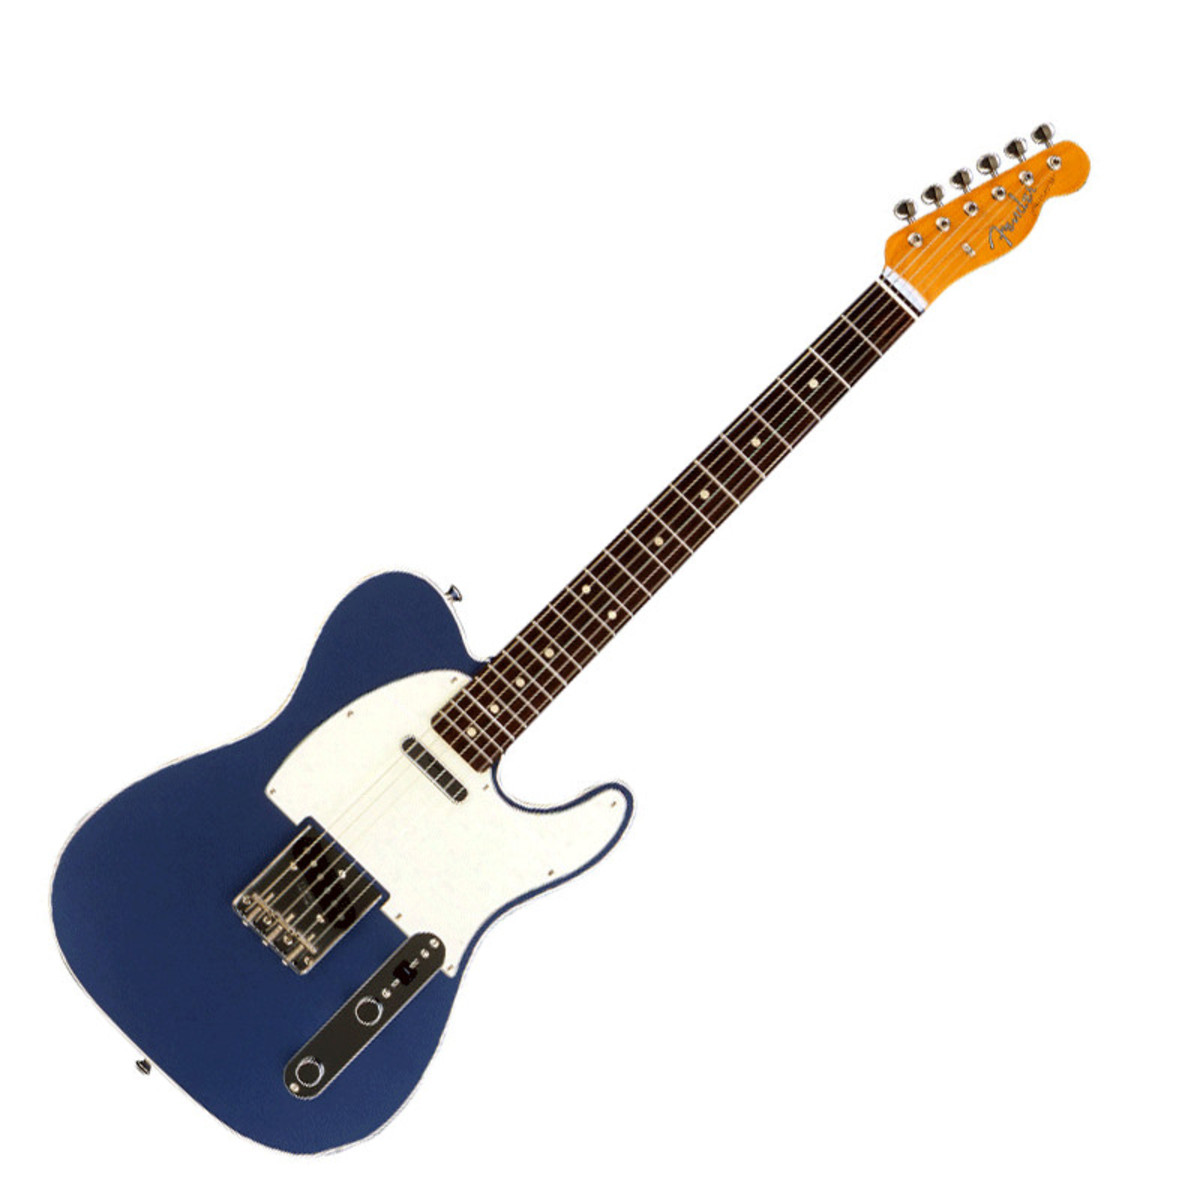 fender fsr 62 telecaster electric guitar lake placid blue at gear4music. Black Bedroom Furniture Sets. Home Design Ideas